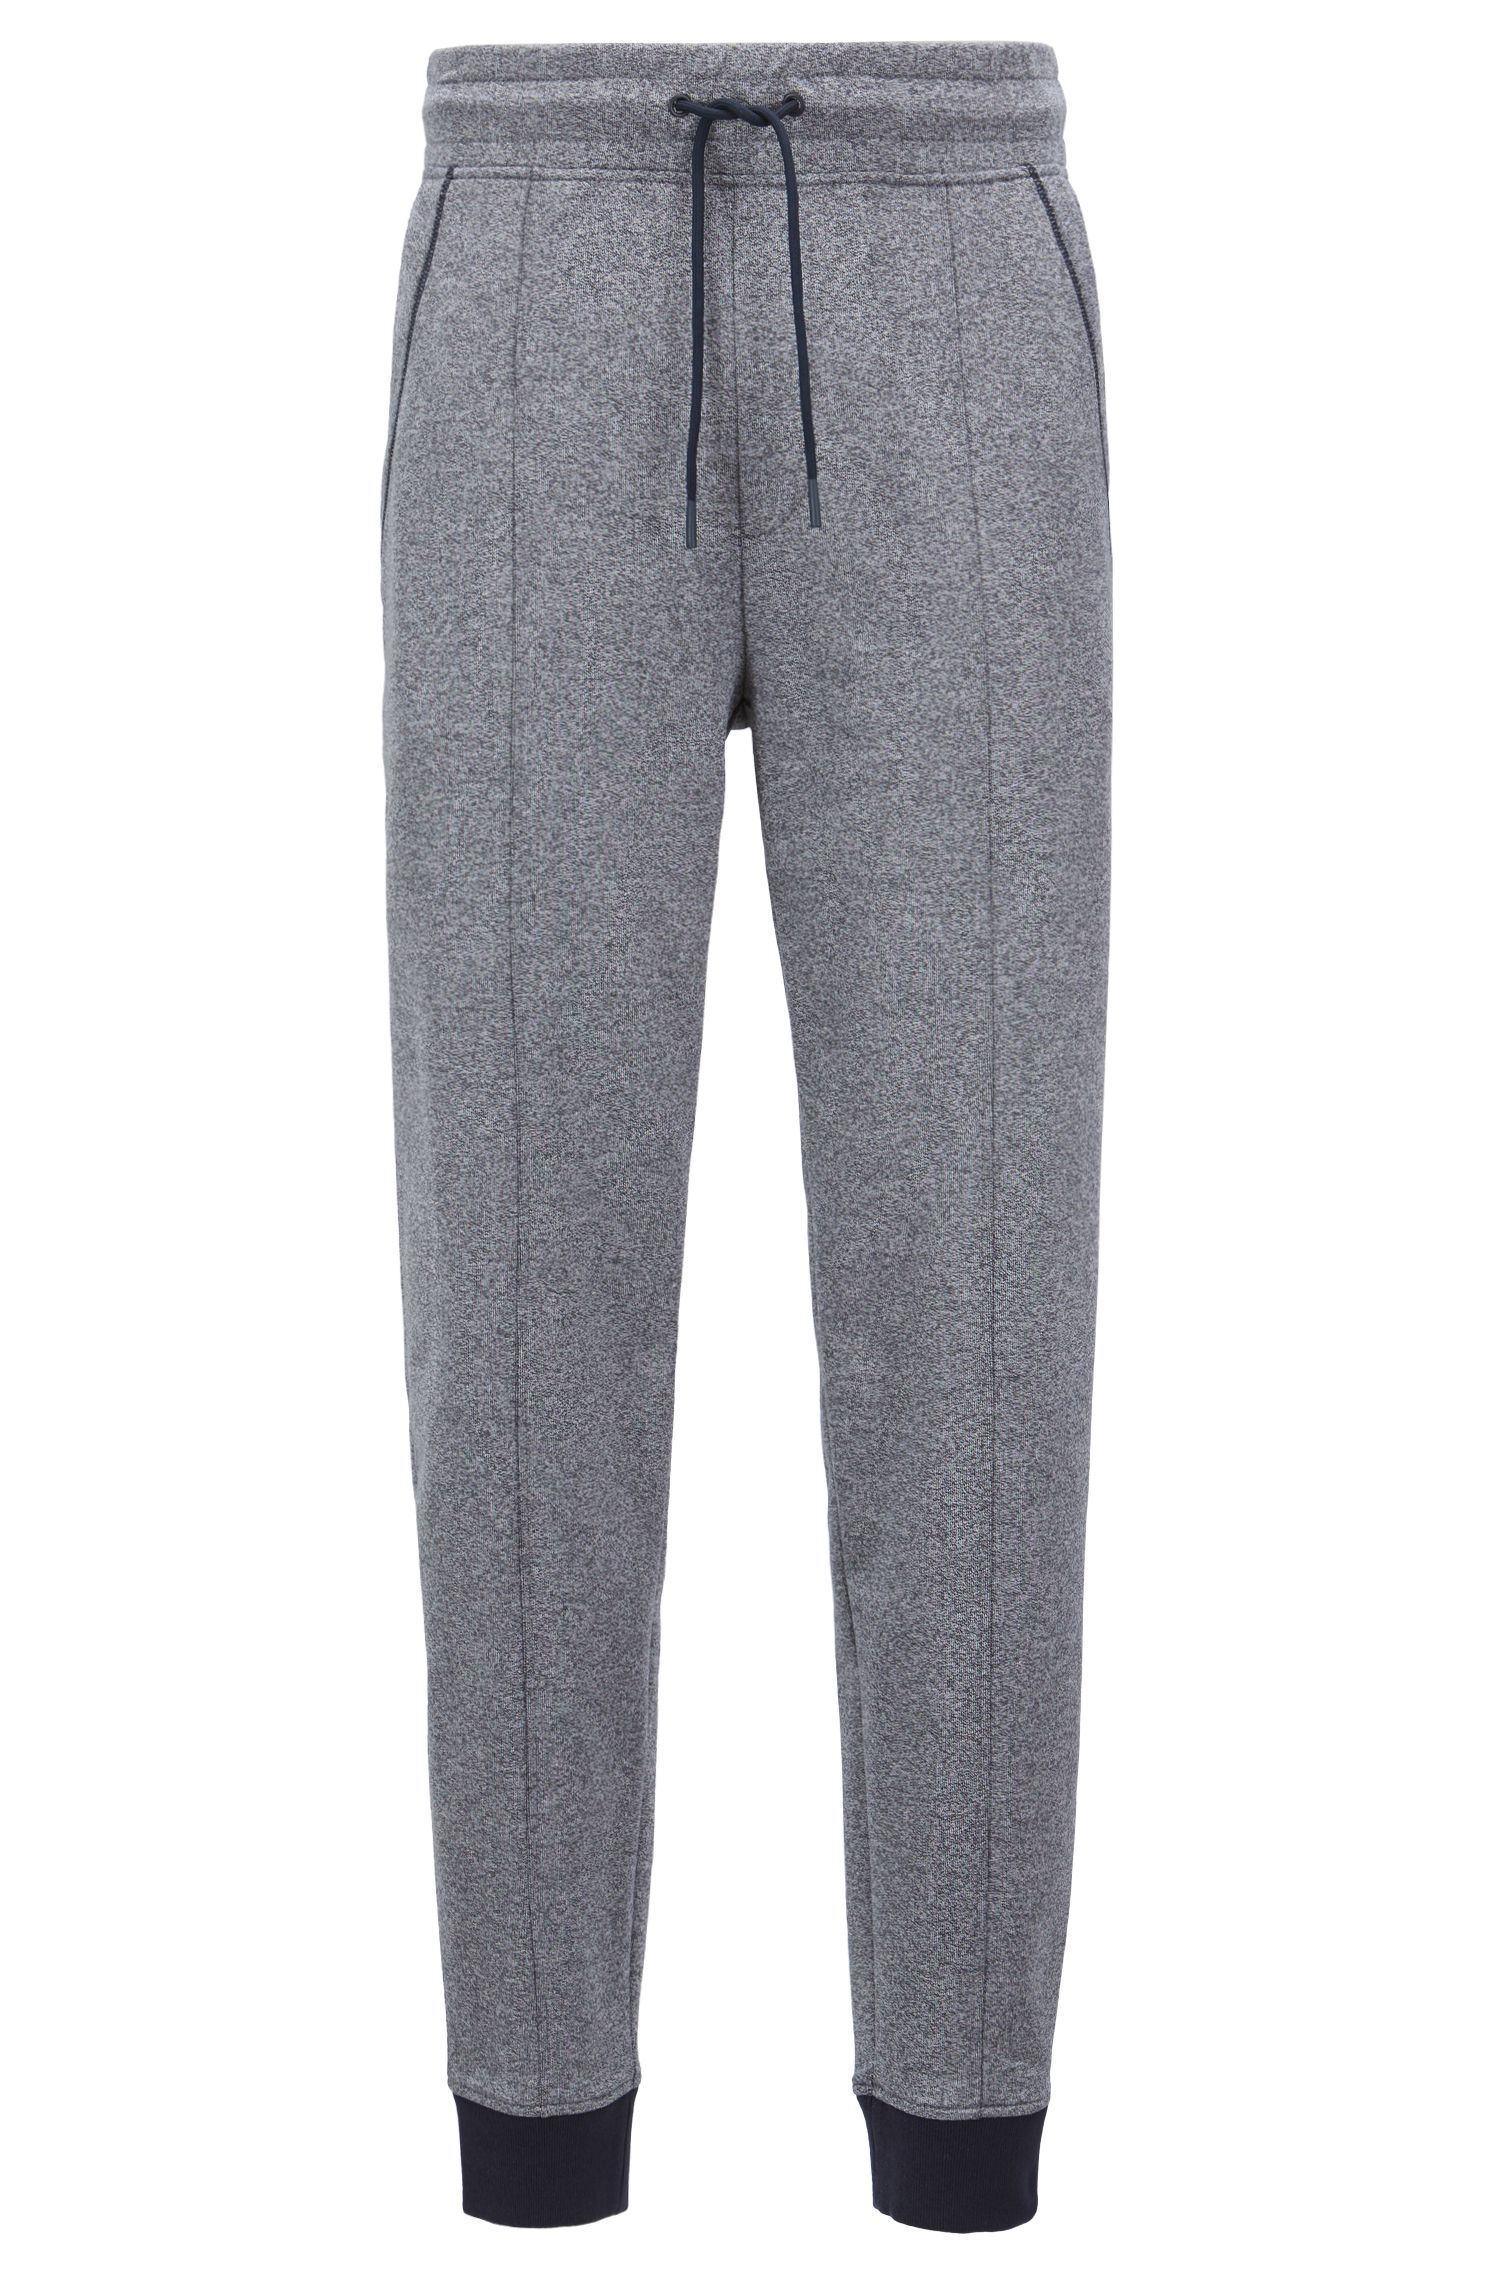 Drawstring-waist loungewear pants in two-color cotton terry, Grey